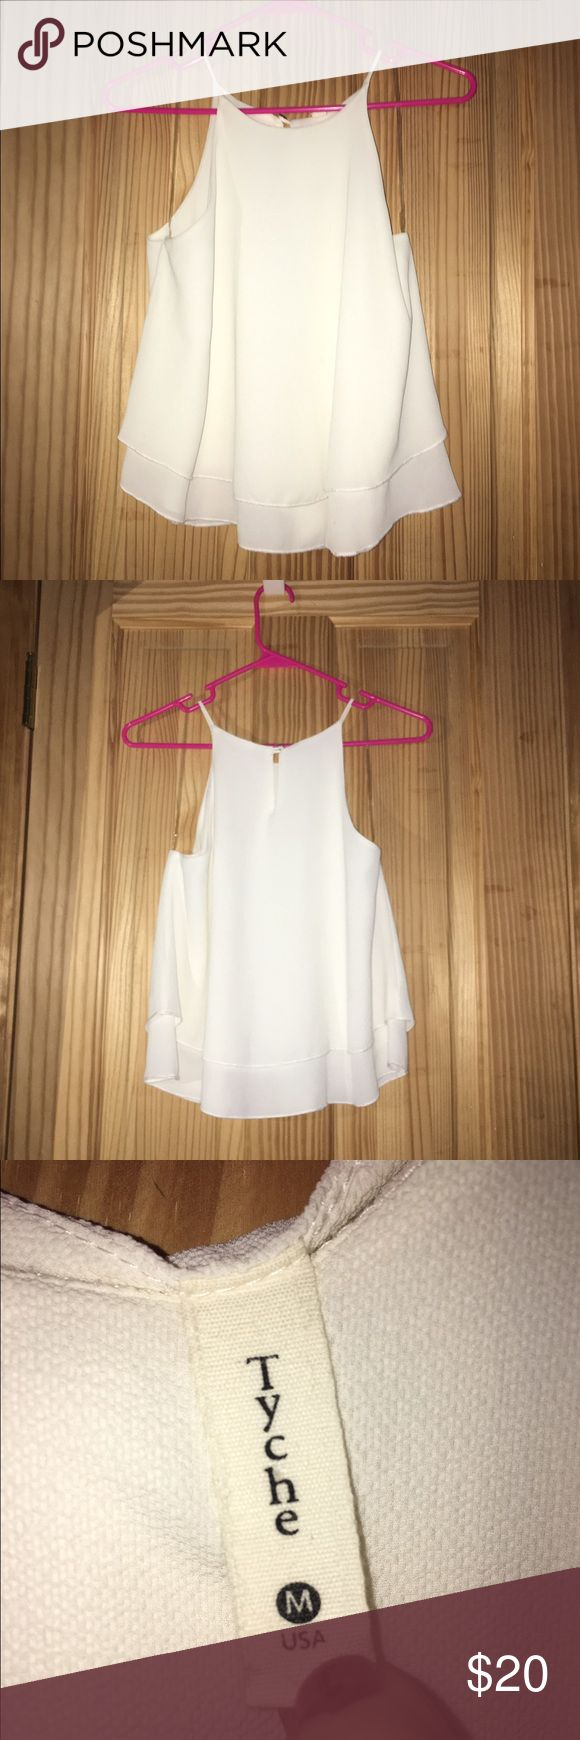 White layered tank Size: Medium. White layered tank top from Apricot Lane. Has a decorative button to secure the shirt. Worn once. Tyche Tops Tank Tops